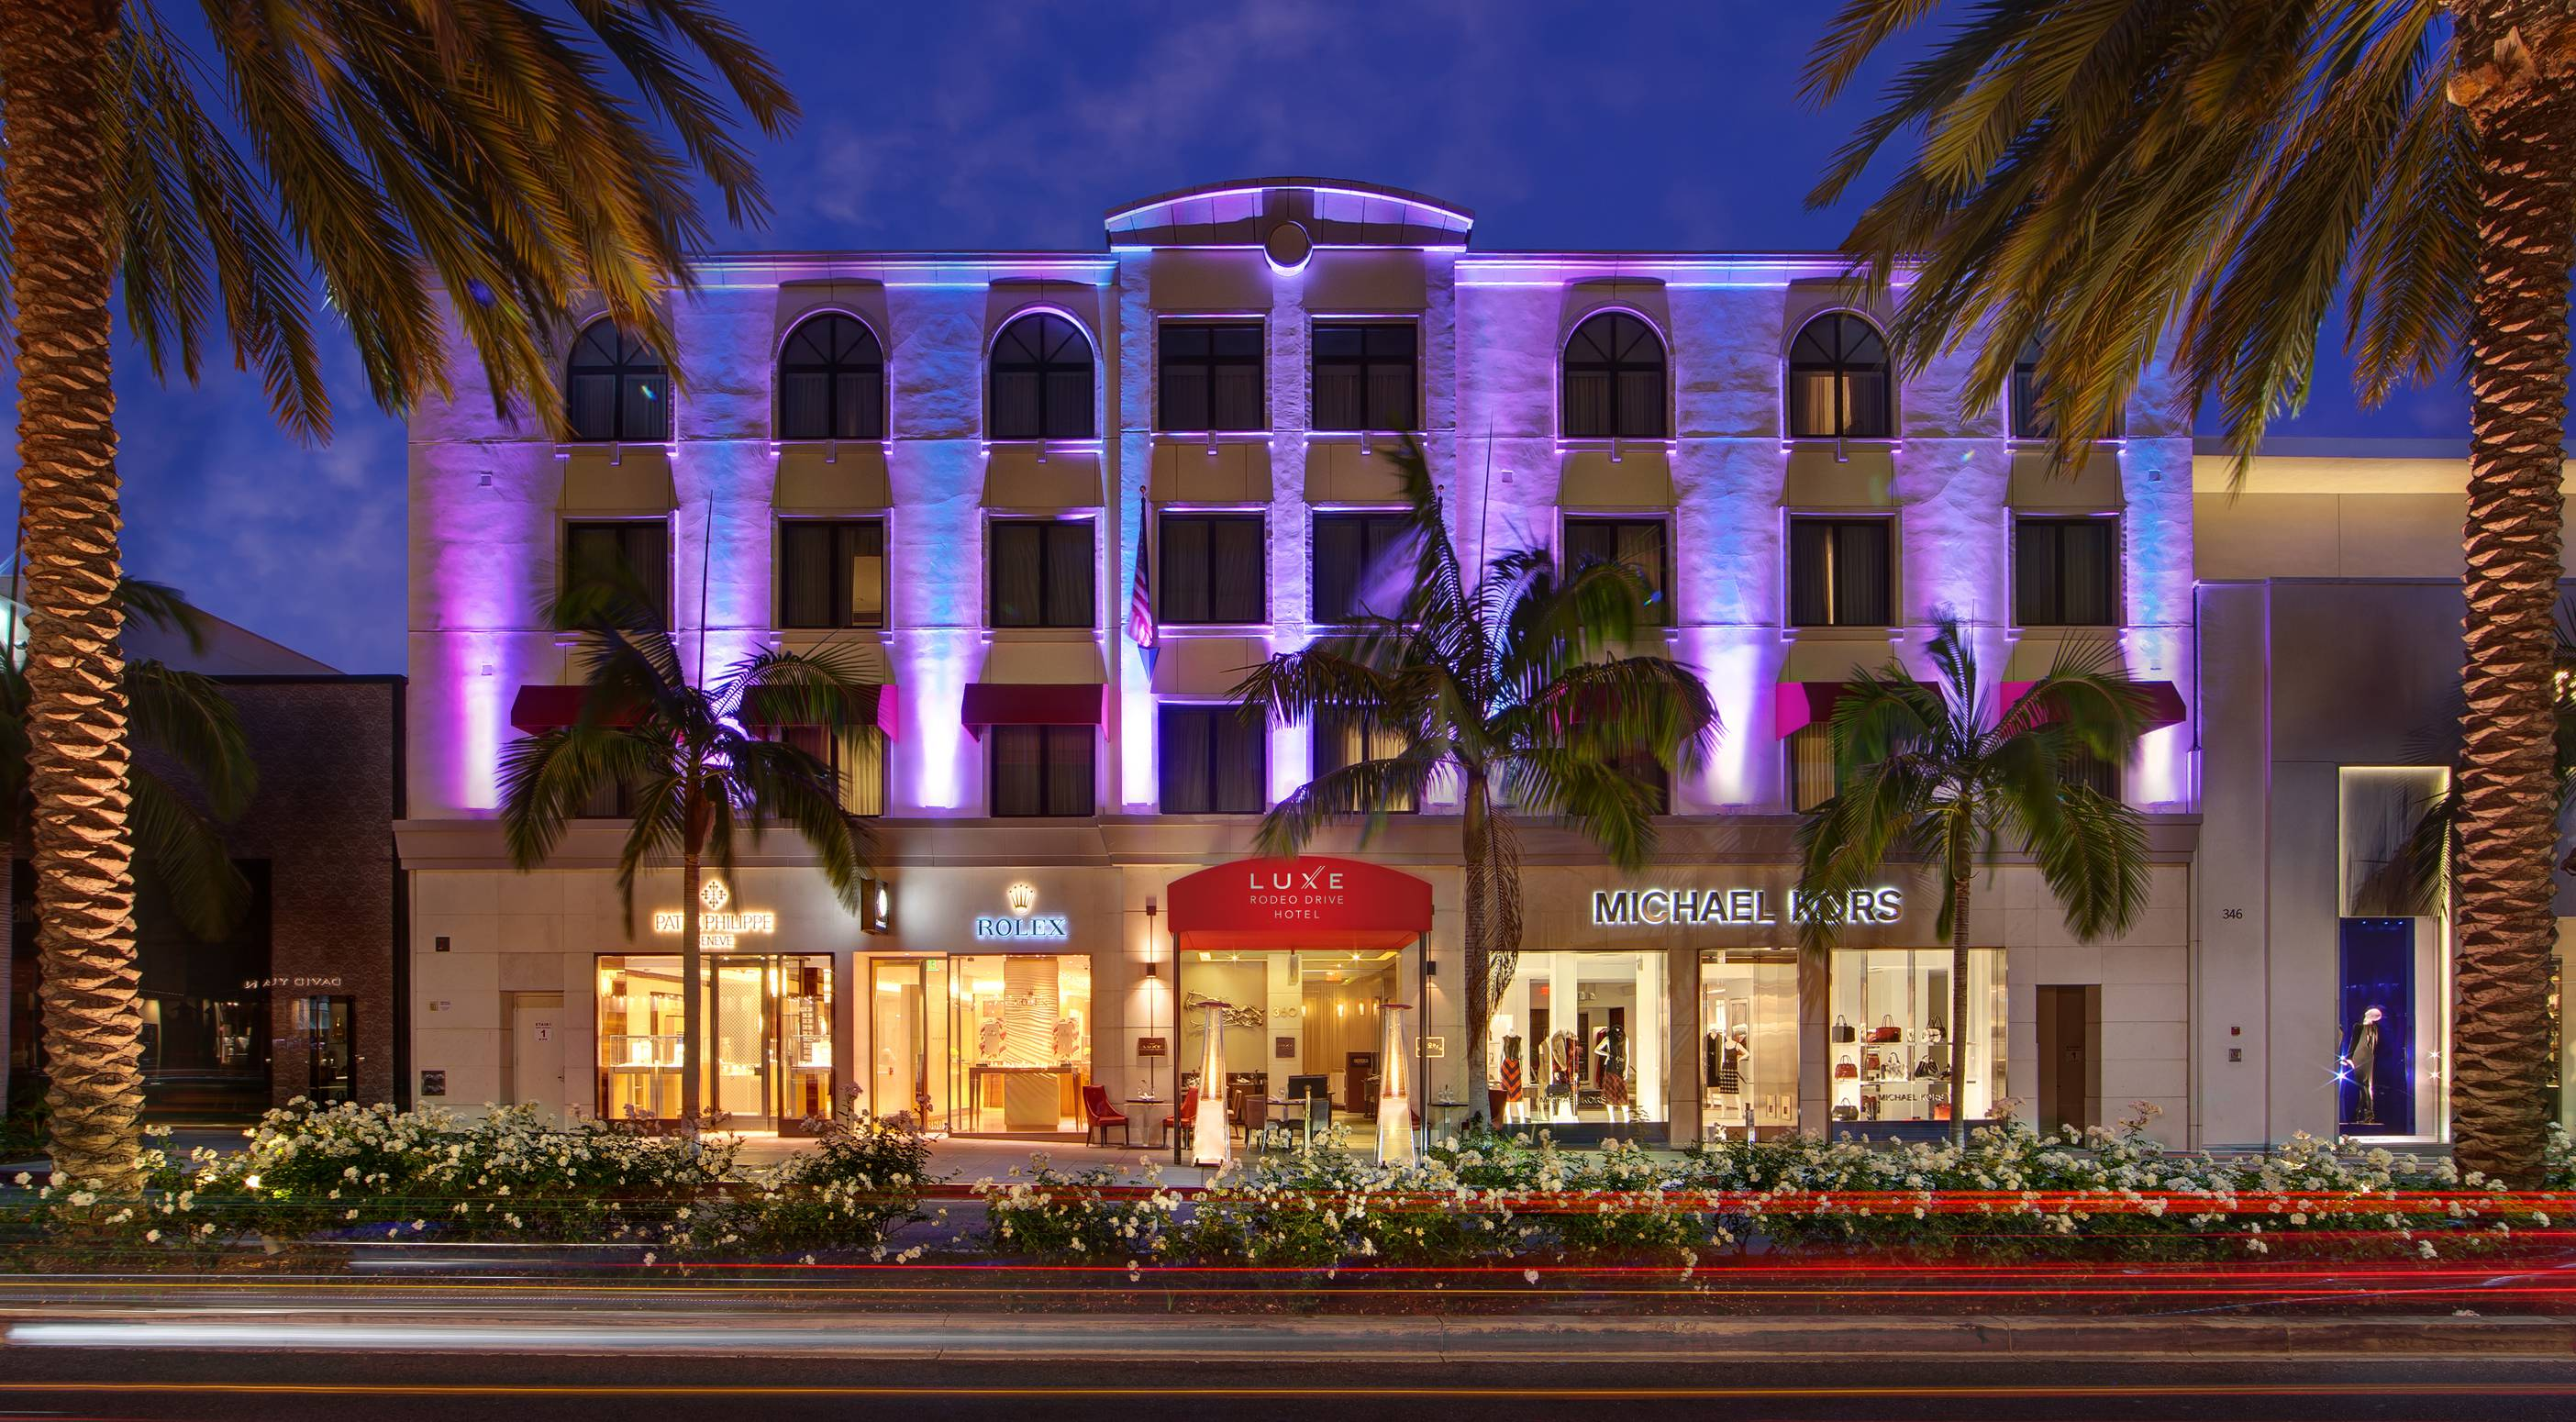 Luxe hotel rodeo drive to open exclusive new residence club for Residence luxe